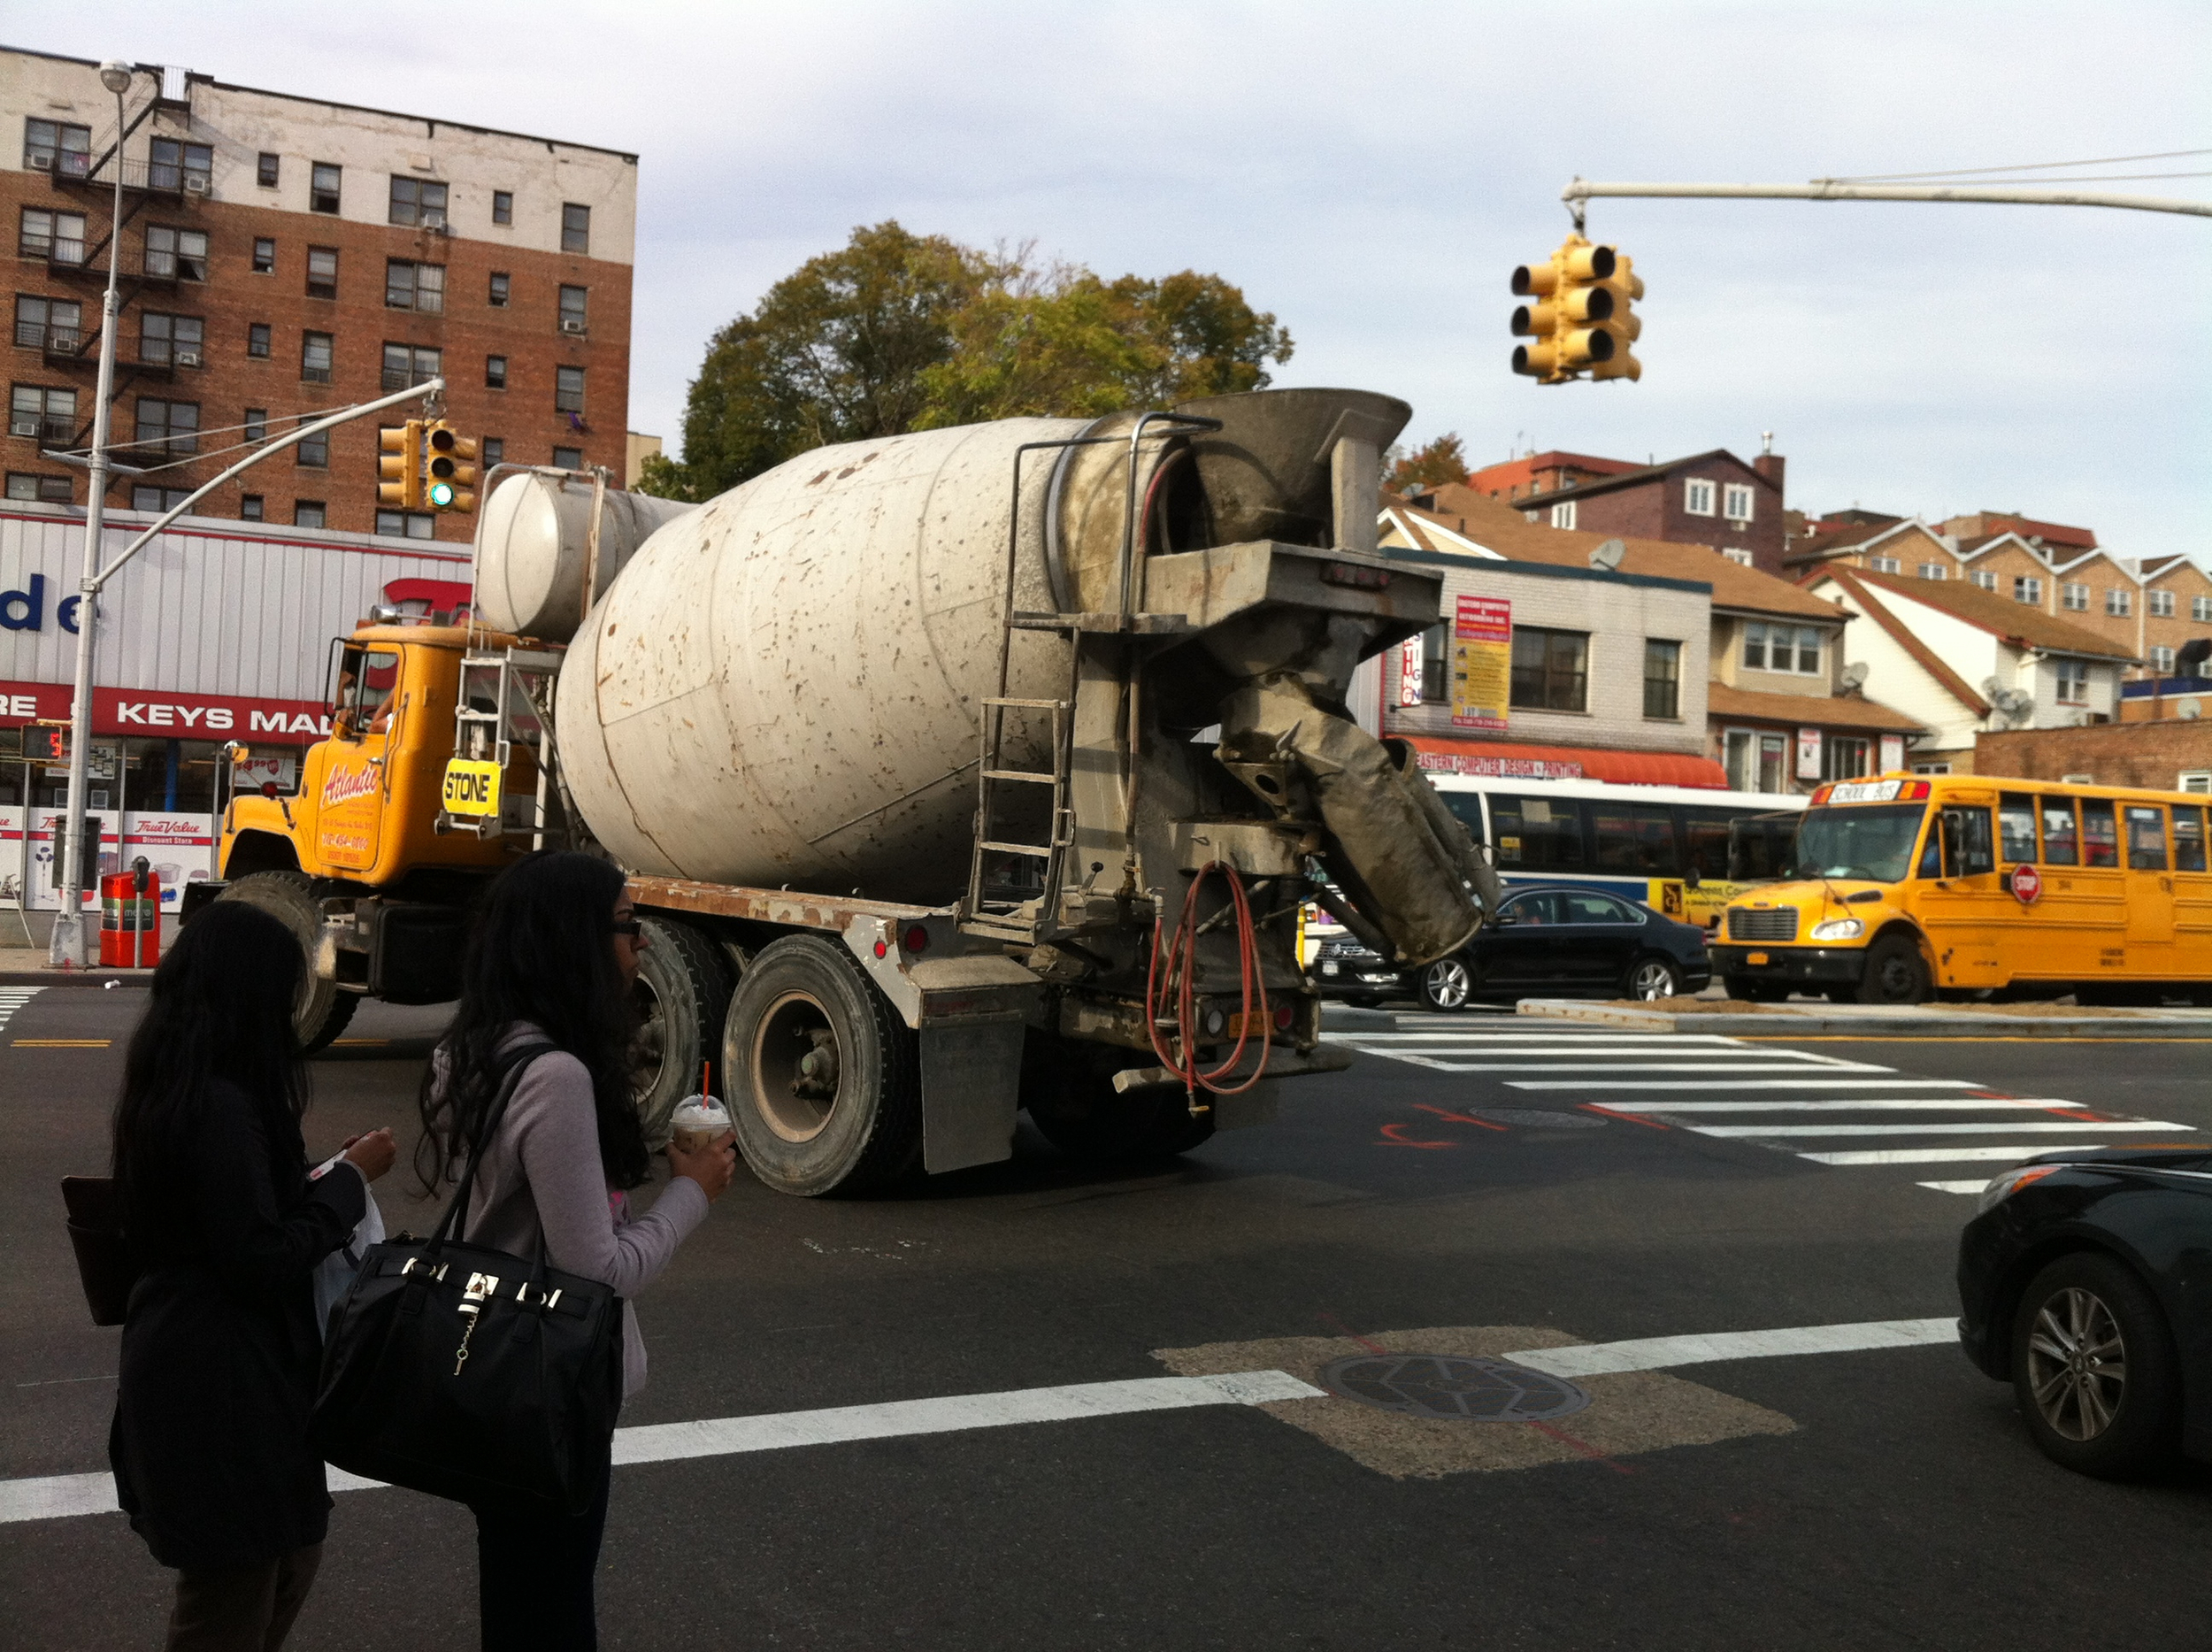 A commercial truck driver drove a cement truck through 170th Street in Jamaica, Queens, turning west onto Hillside Avenue. Source : Louis Flores